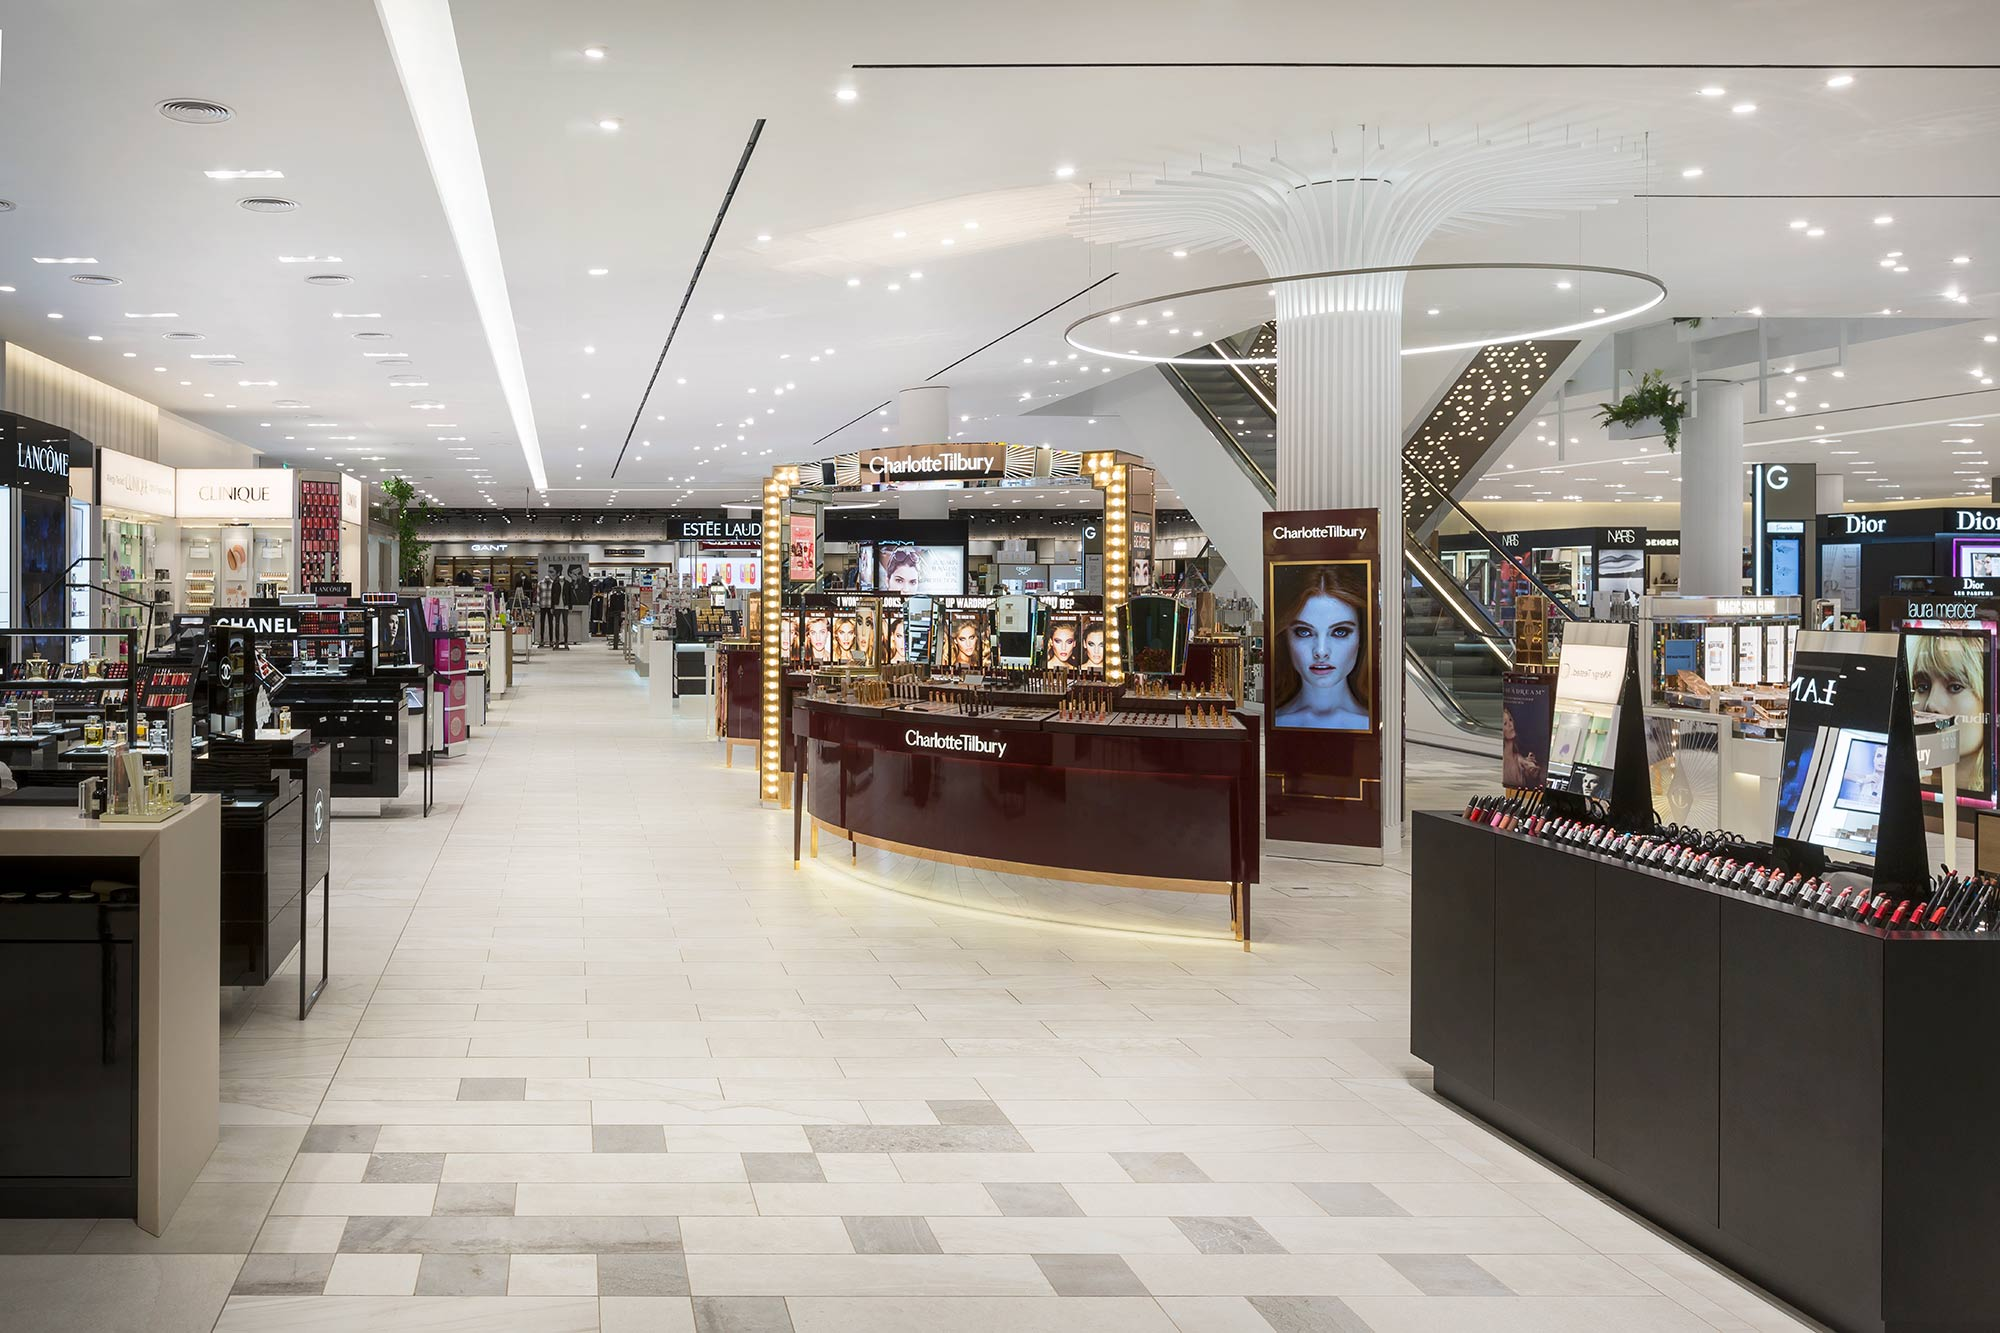 An image of the beauty department inside Fenwick, The Lexicon in Bracknell which has been refurbished.